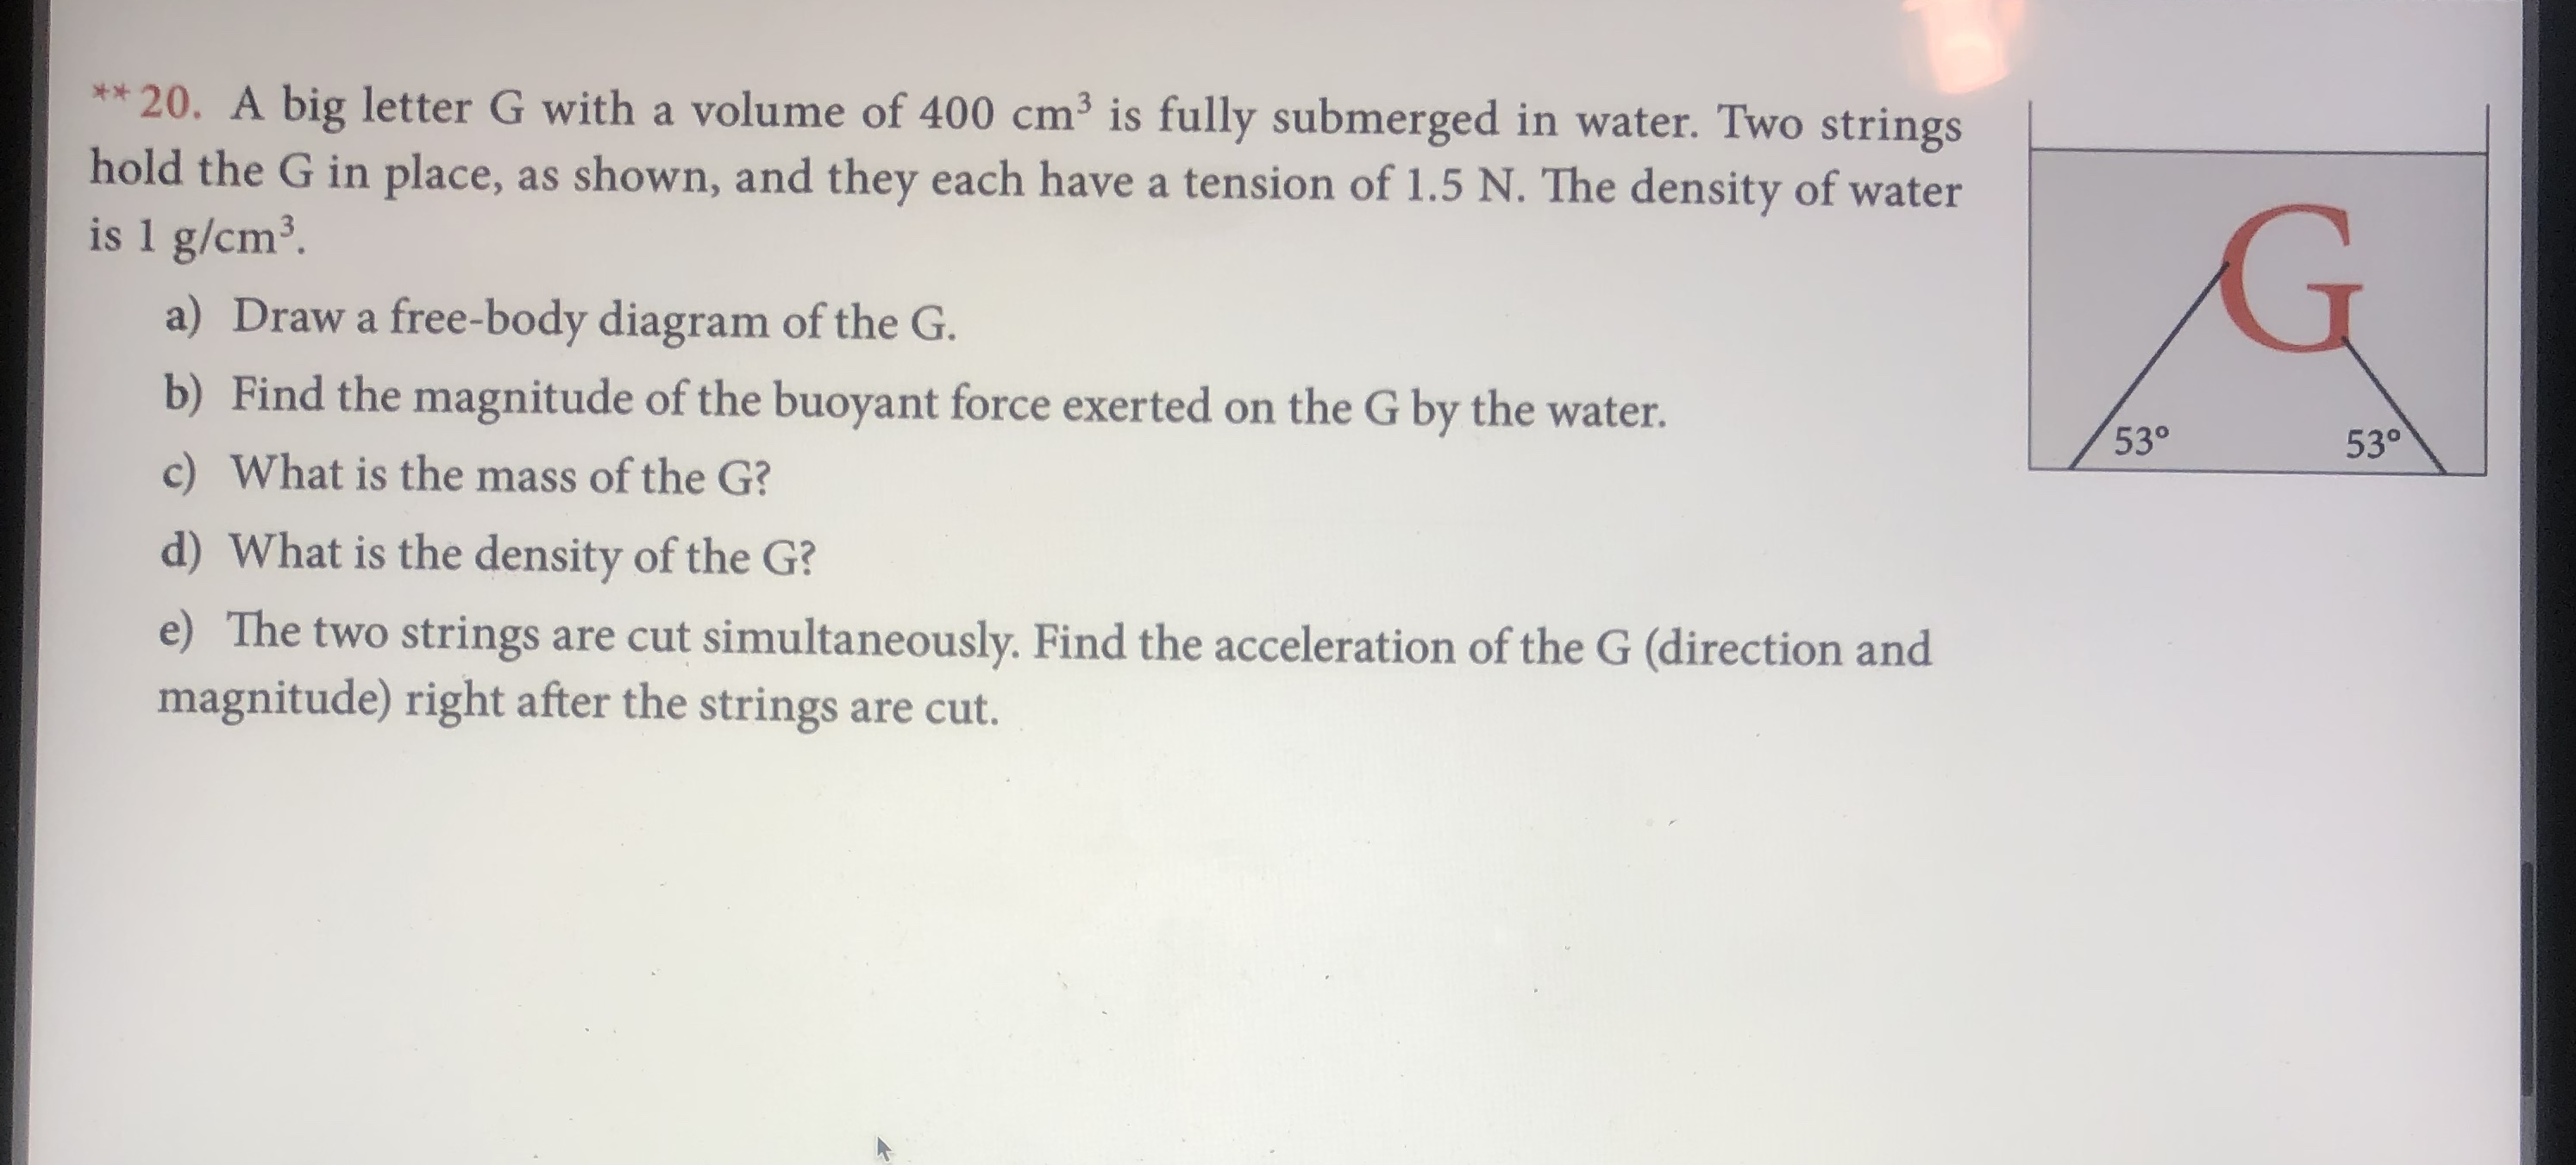 **20. A big letter G with a volume of 400 cm3 is fully submerged in water. Two strings hold the G in place, as shown, and they each have a tension of 1.5 N. The density of water is 1 g/cm3 a) Draw a free-body diagram of the G. b) Find the magnitude of the buoyant force exerted on the G by the water. 53° 53° c) What is the mass of the G? d) What is the density of the G? e) The two strings are cut simultaneously. Find the acceleration of the G (direction and magnitude) right after the strings are cut.